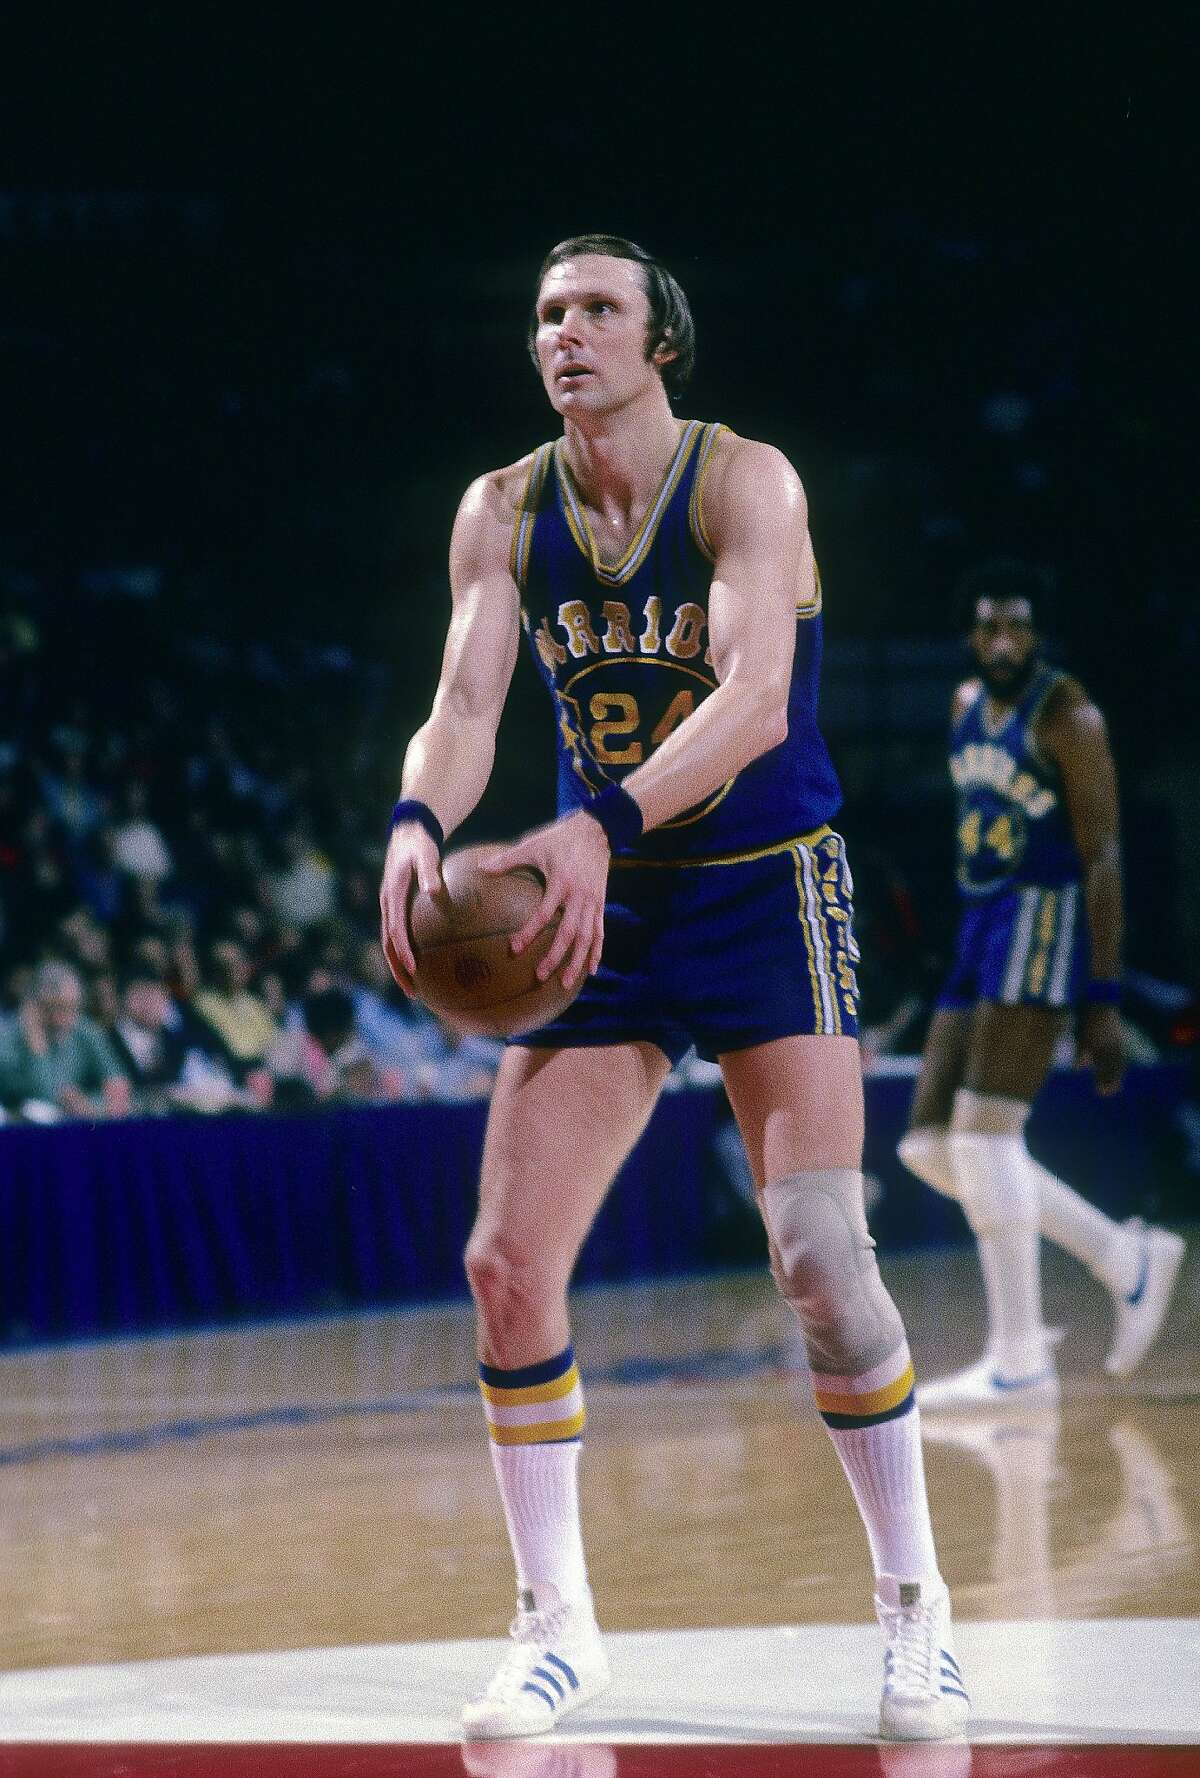 BALTIMORE, MD - CIRCA 1974: Rick Barry #24 of the Golden State Warriors is at the free-throw line against the Washington Bullets during a circa 1974 NBA basketball game at the Capital Center in Baltimore, Maryland. Barry played for the Warriors from 1972 - 77. (Photo by Focus on Sport/Getty Images)